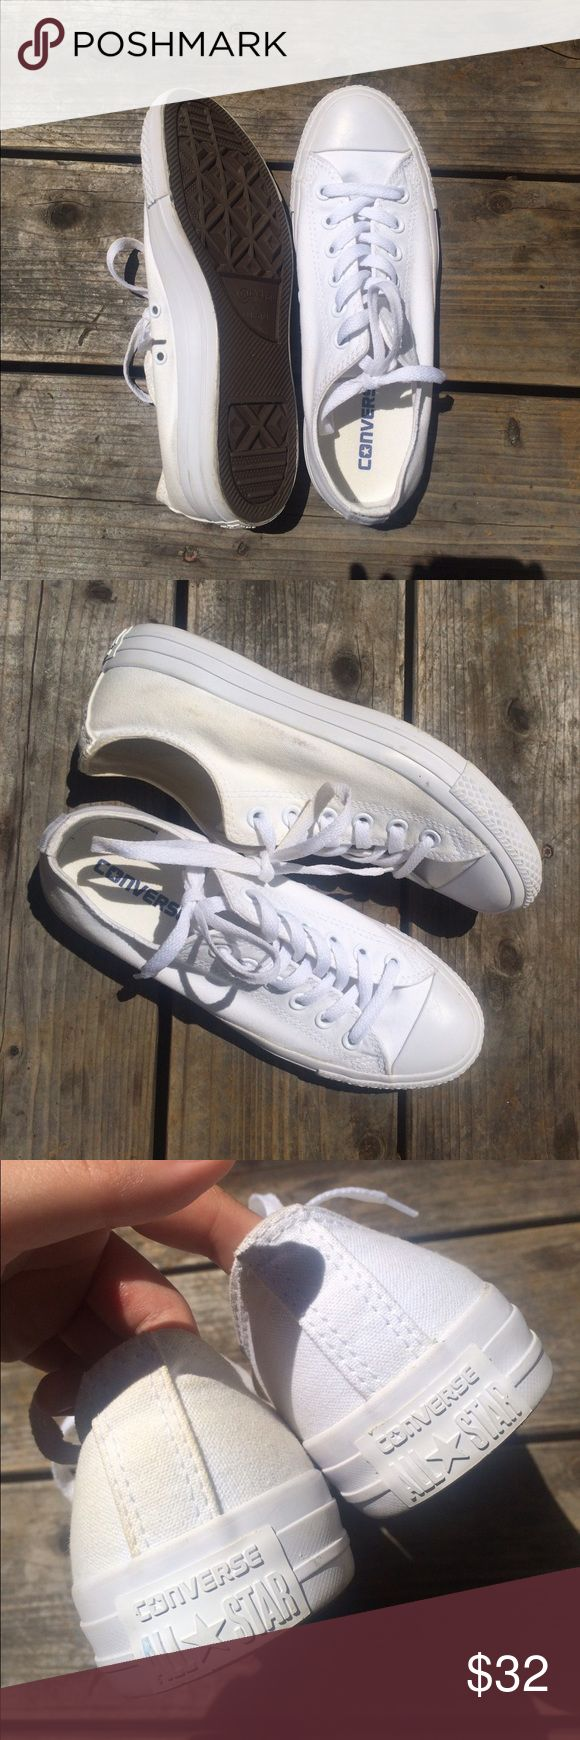 all white converse very good condition, minor yellowing, bottoms are completely clean!! I spilled a little coffee on the left one, you can see the pictures showing the brownish stains, but that can come out with bleach and these will look NEW!! These goes with every outfit!!💗💗💗💗 Converse Shoes